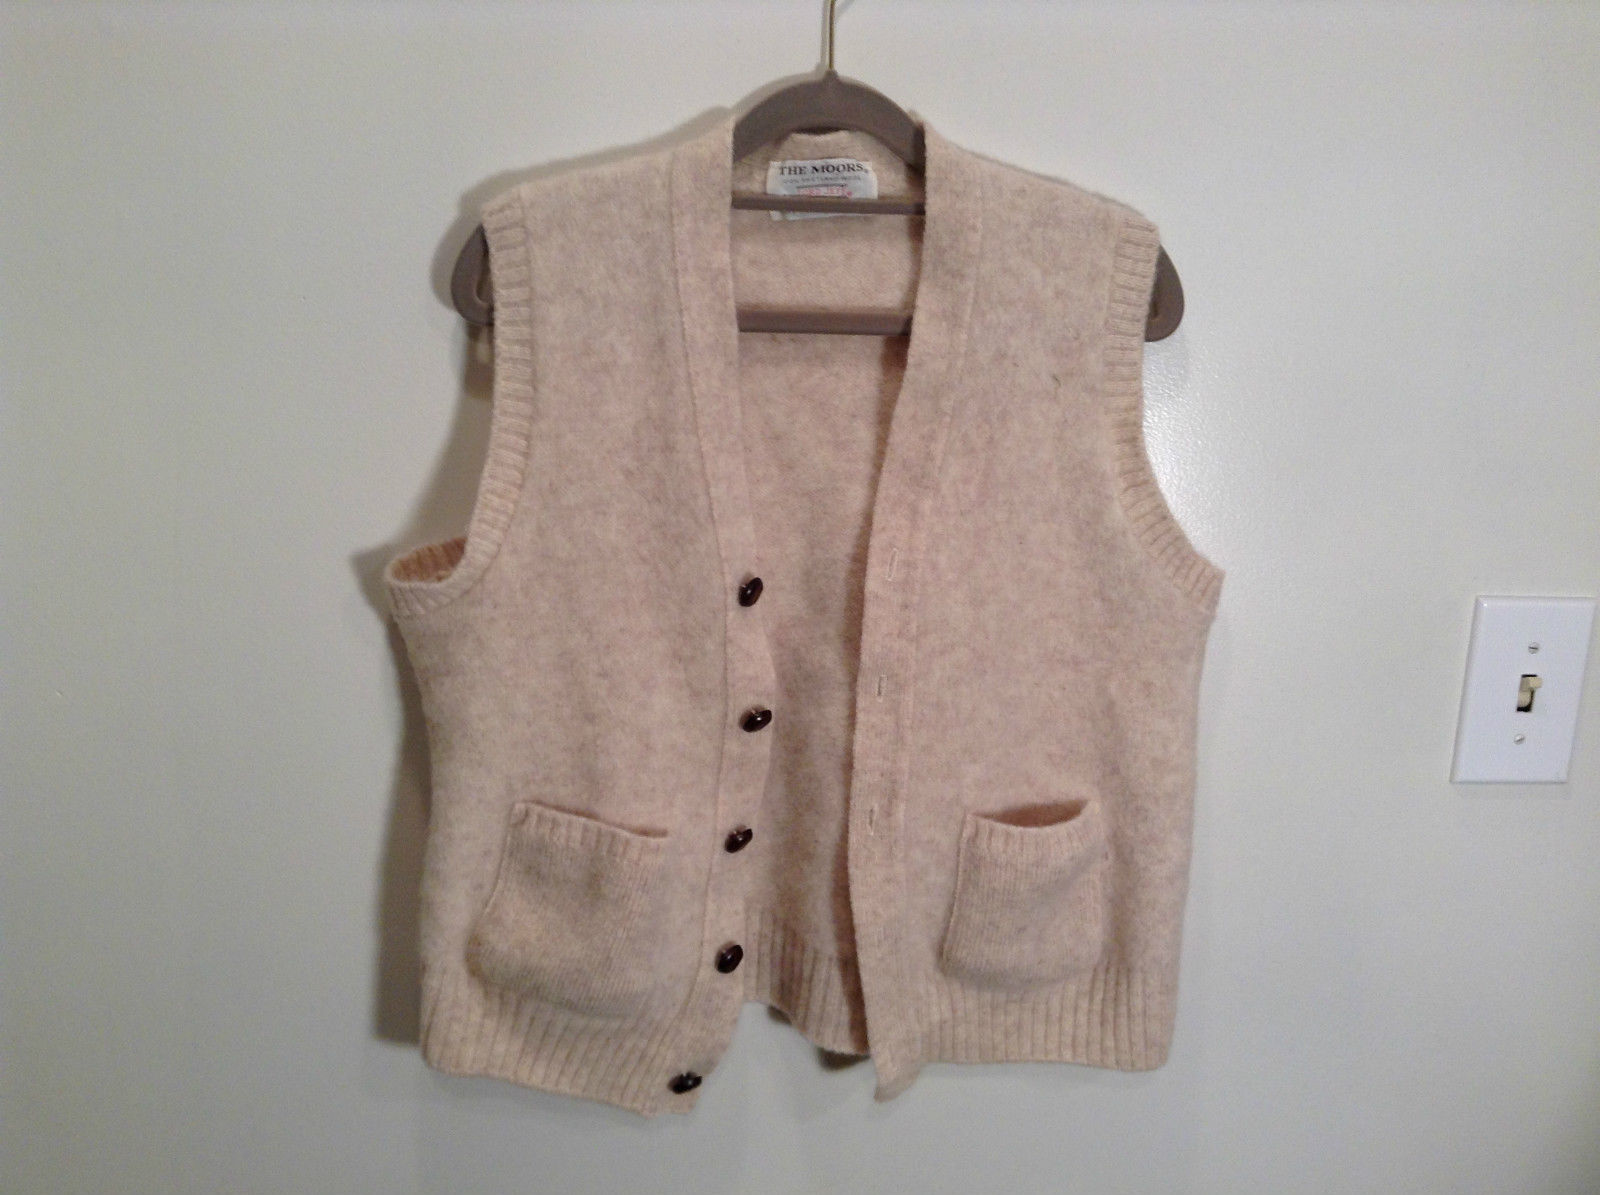 The Moors 100 Percent Shetland Wool Lord Jeff Beige Vest with Pockets